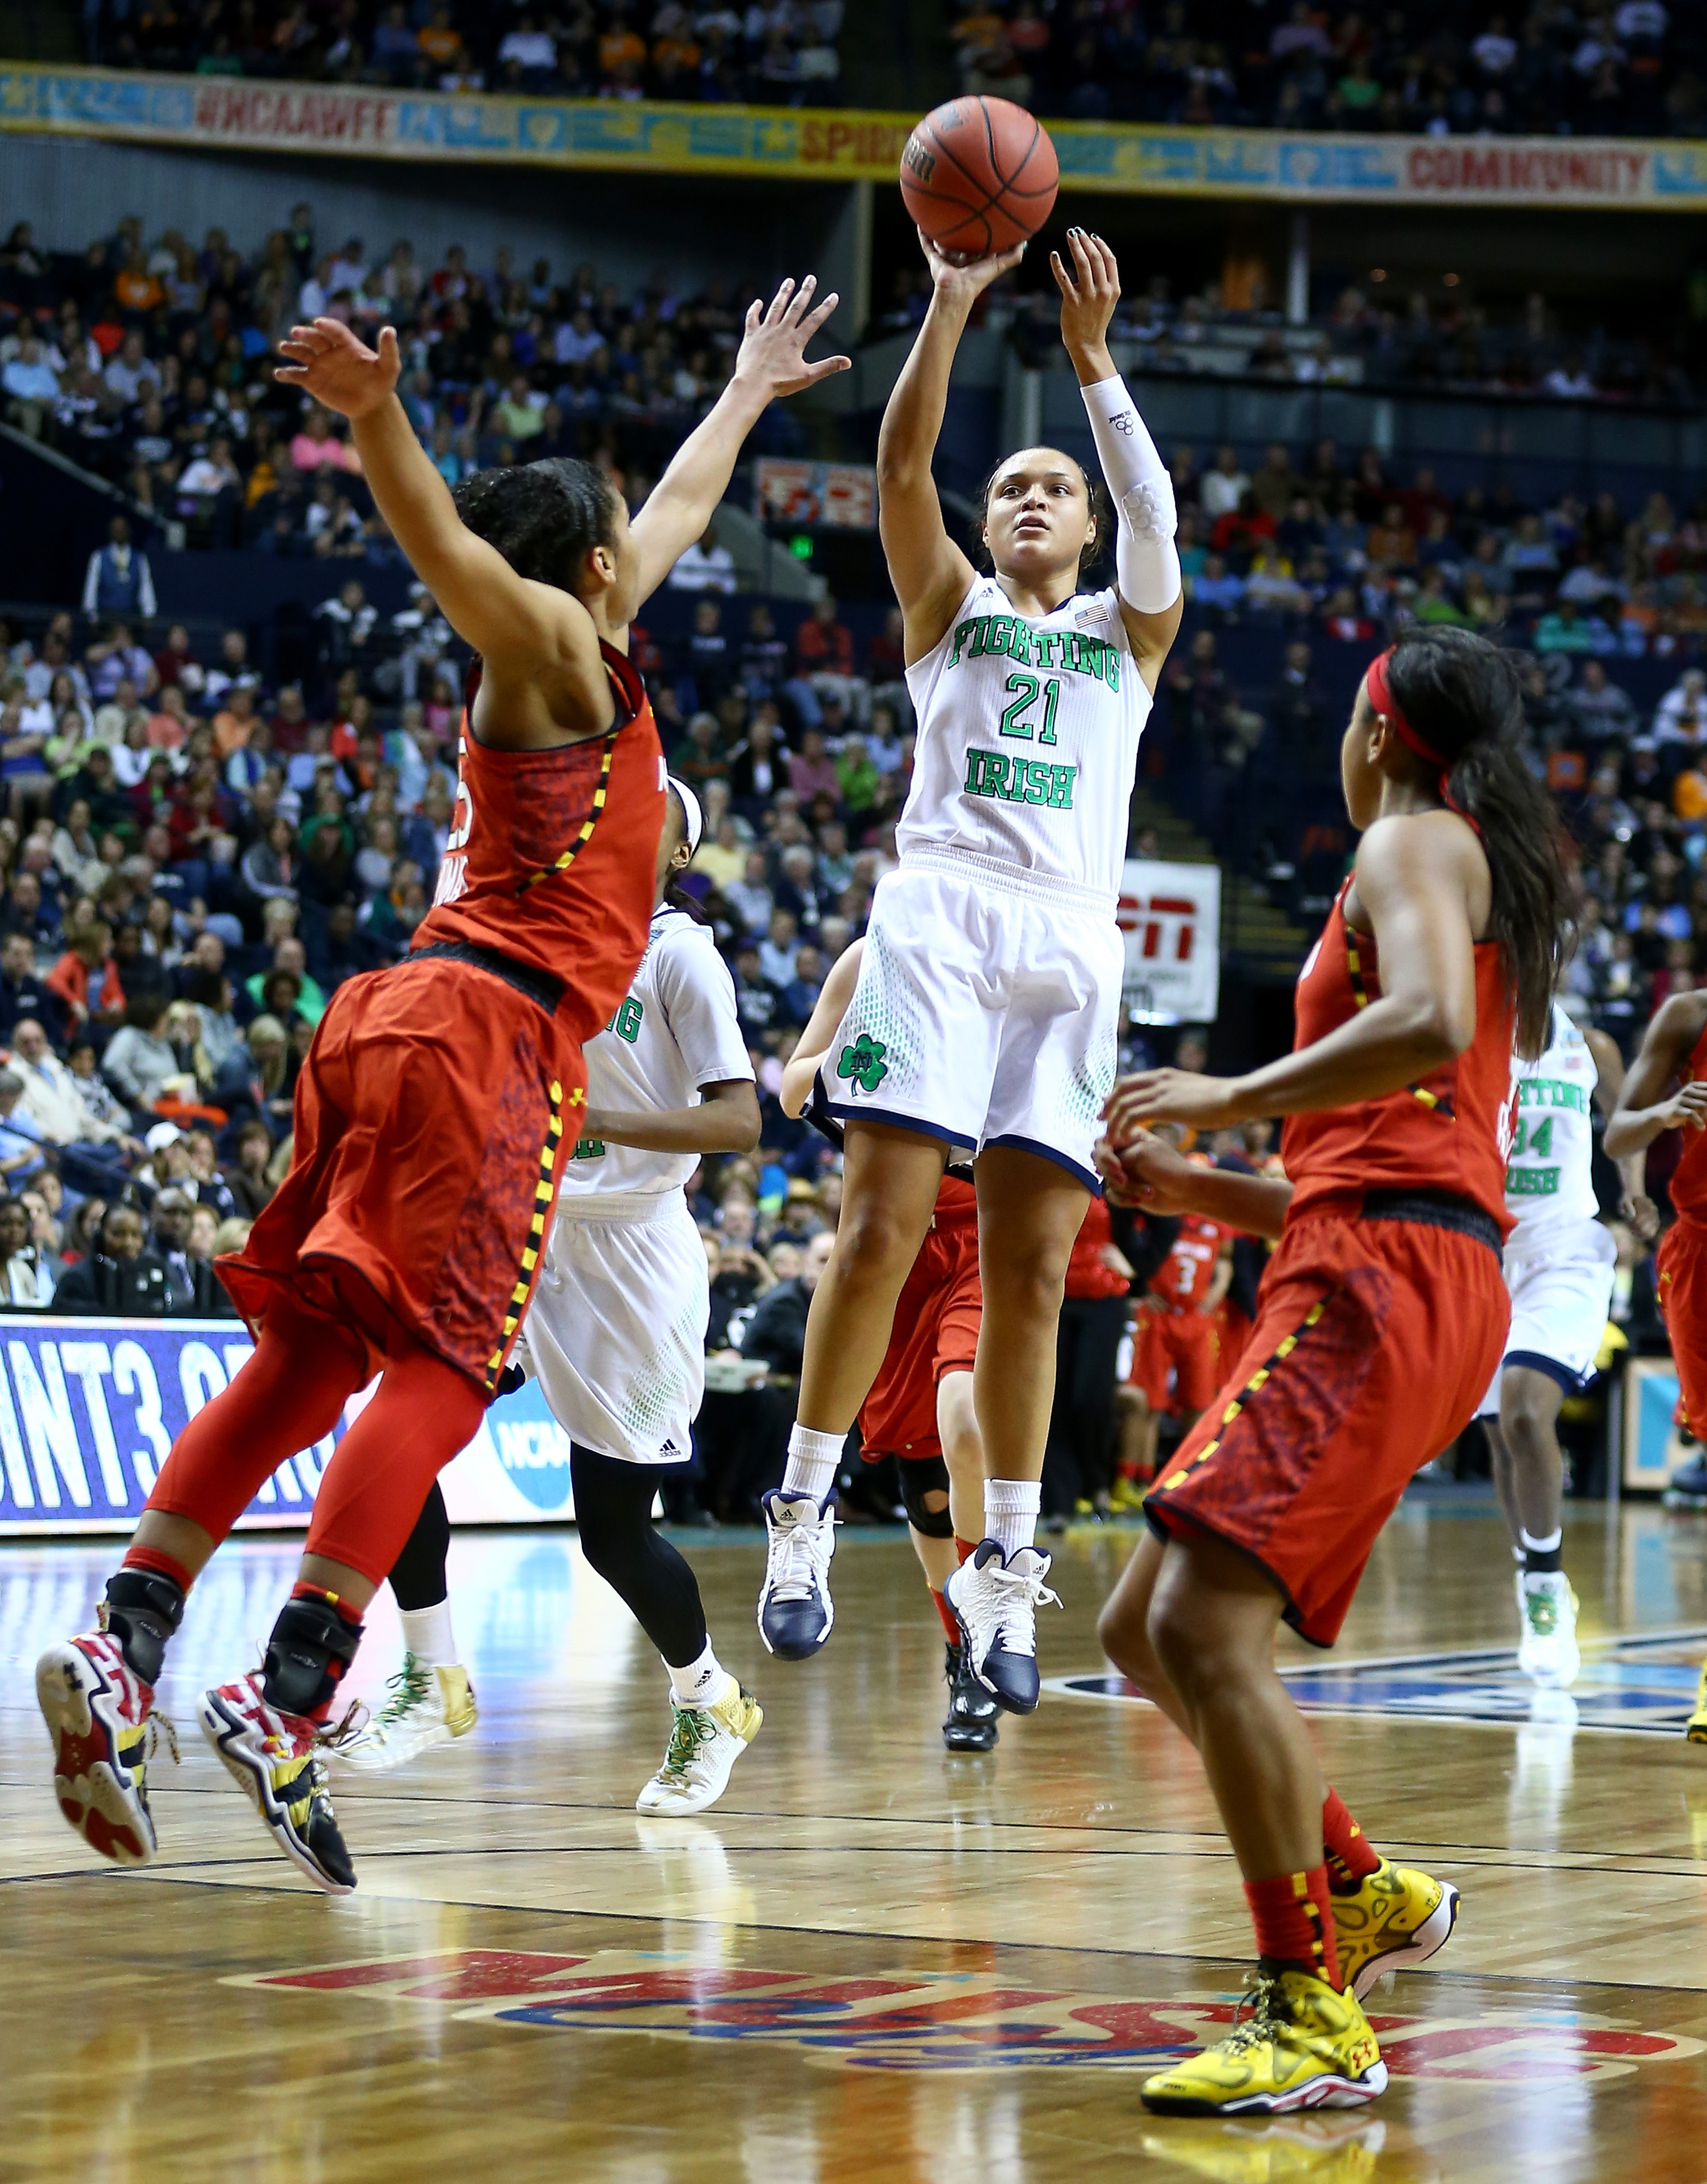 Kayla McBride had the sweetest mid-range game in the nation, but how far might that take her in the WNBA?